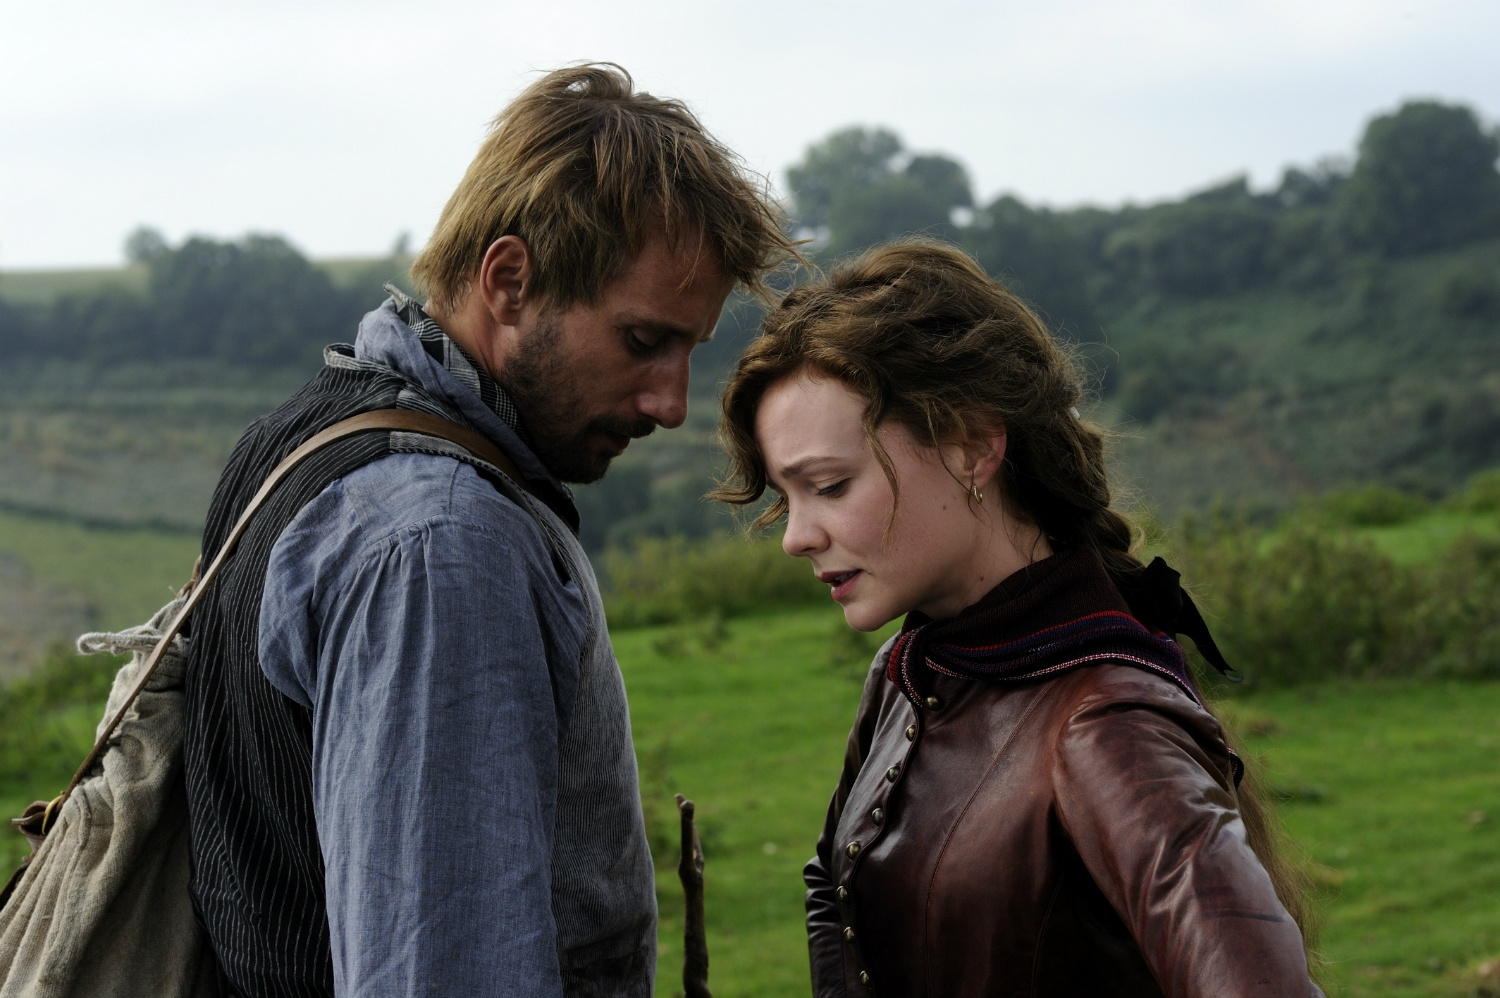 Filmdiner met voorpremière 'Far from the madding crowd'